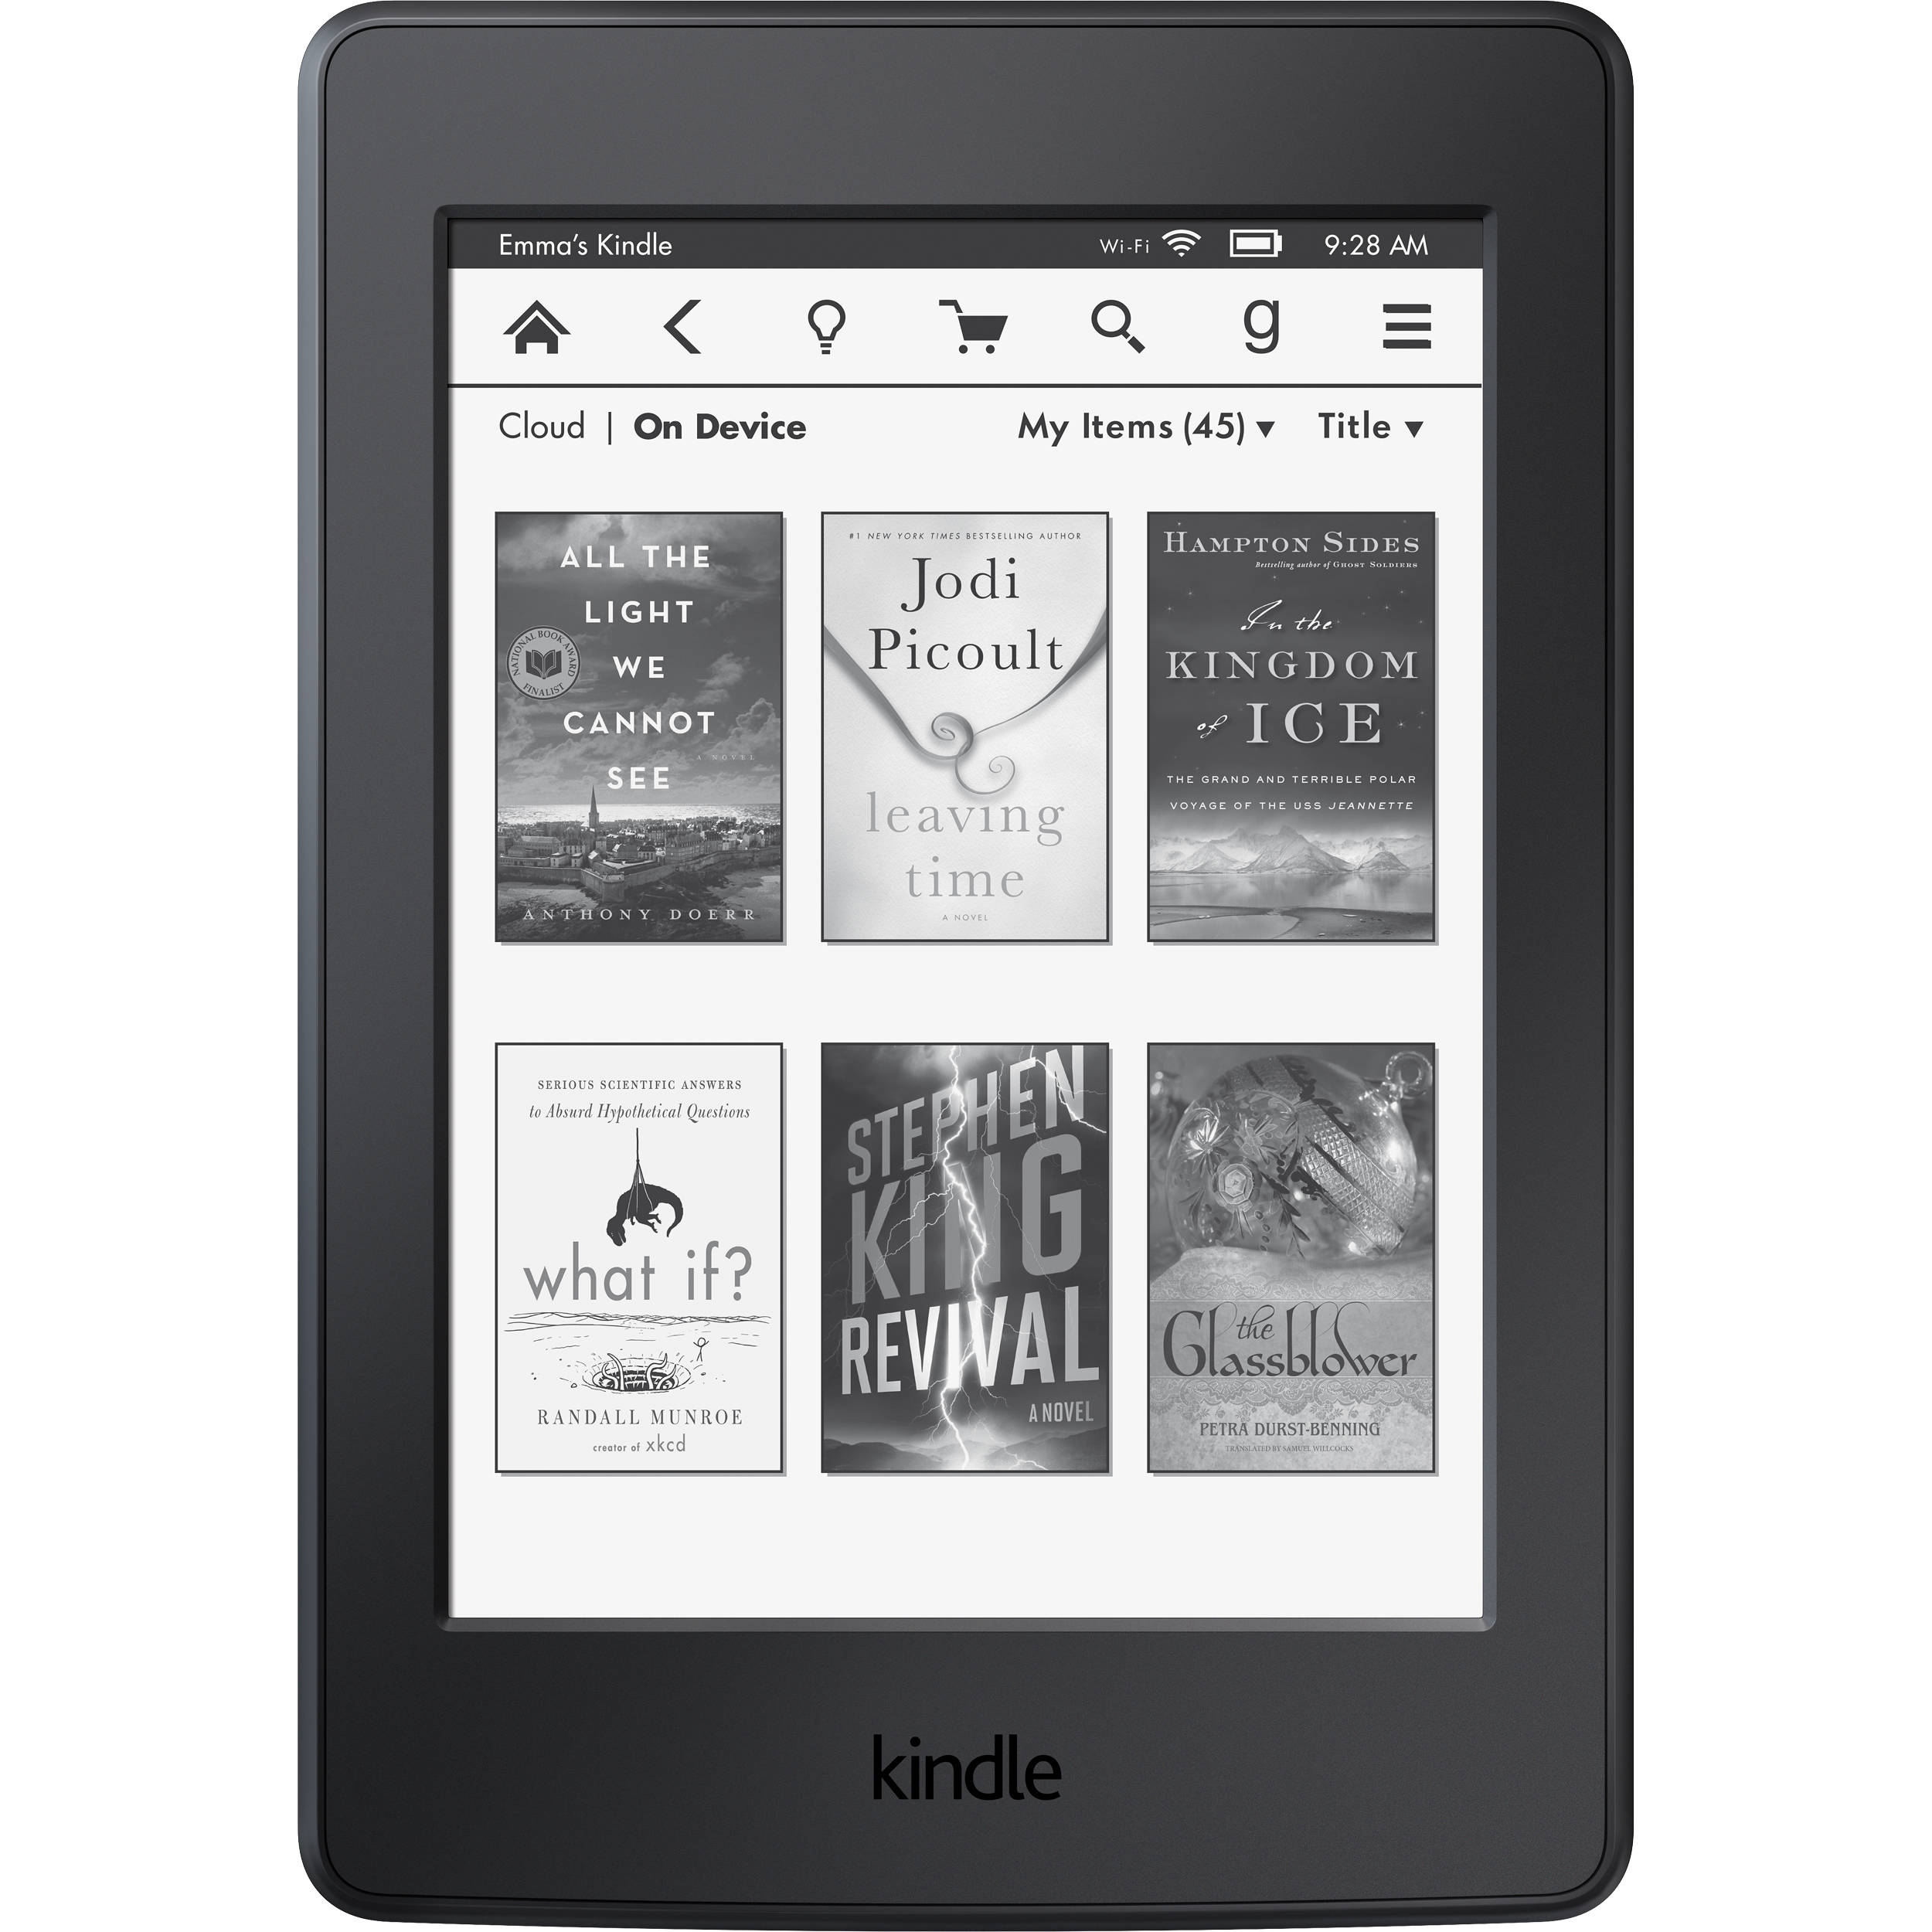 How to Share Books on Kindle forecasting